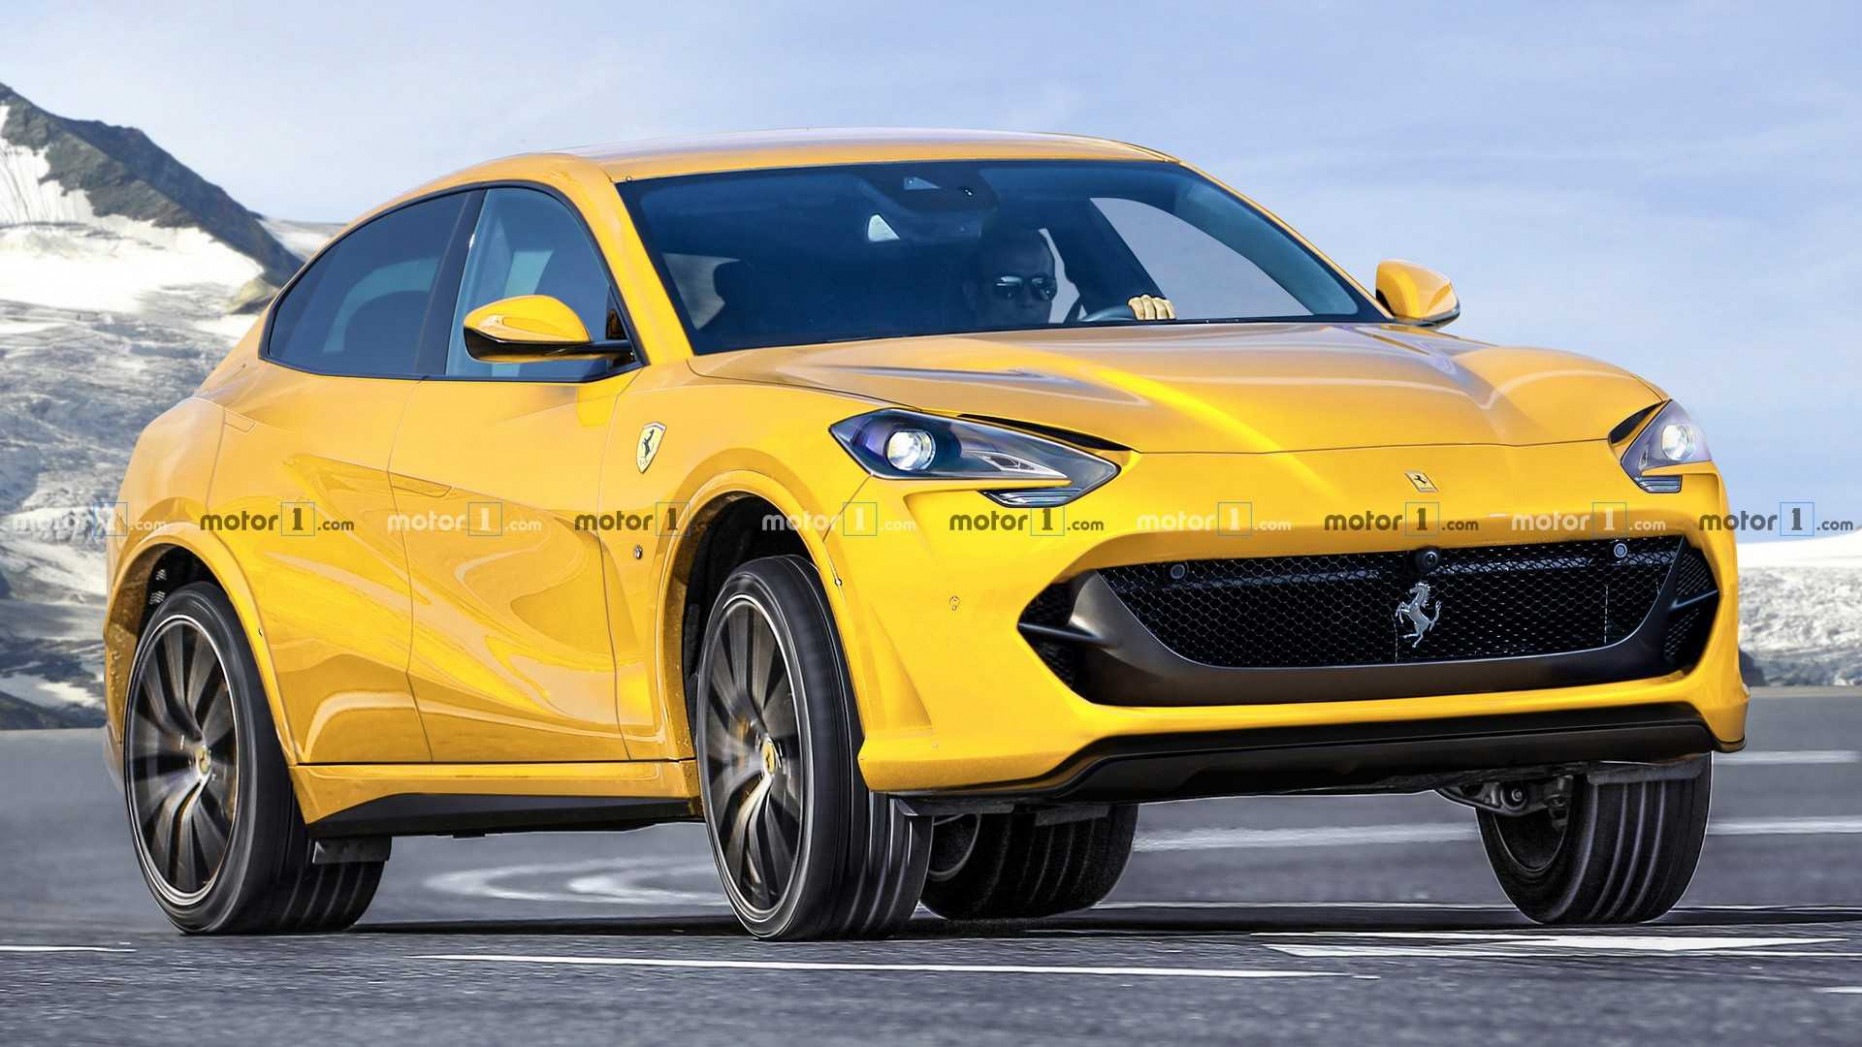 Ferrari Purosangue SUV Rendered To Take On Lamborghini Urus - ferrari suv 2020